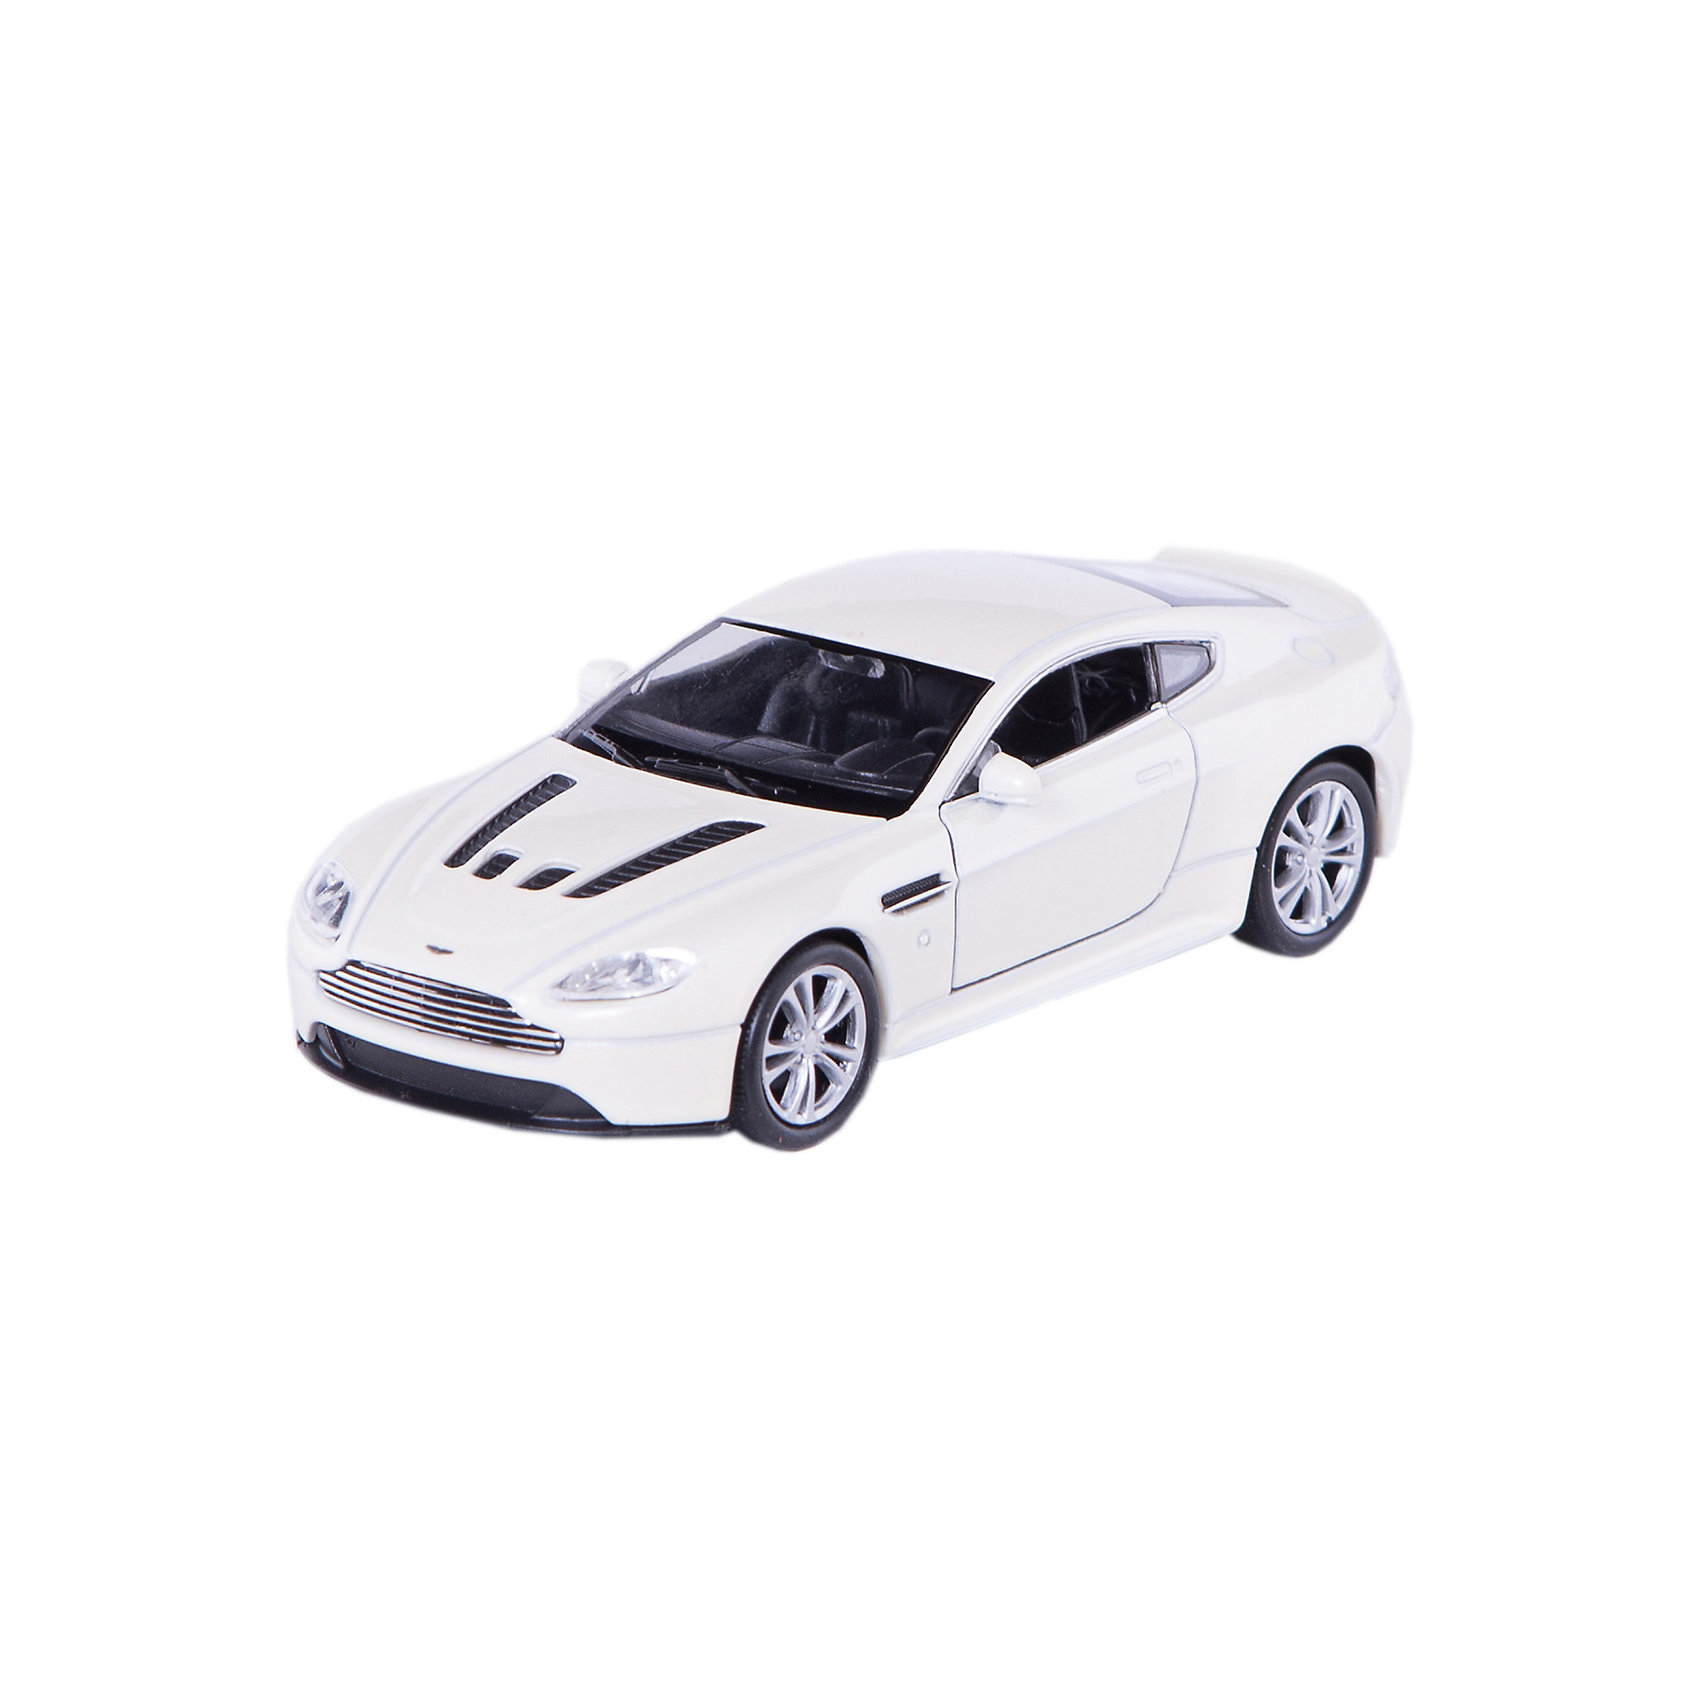 Welly Модель машины 1:34-39 Aston Martin V12 Vantage, Welly кордщетка атака 22341